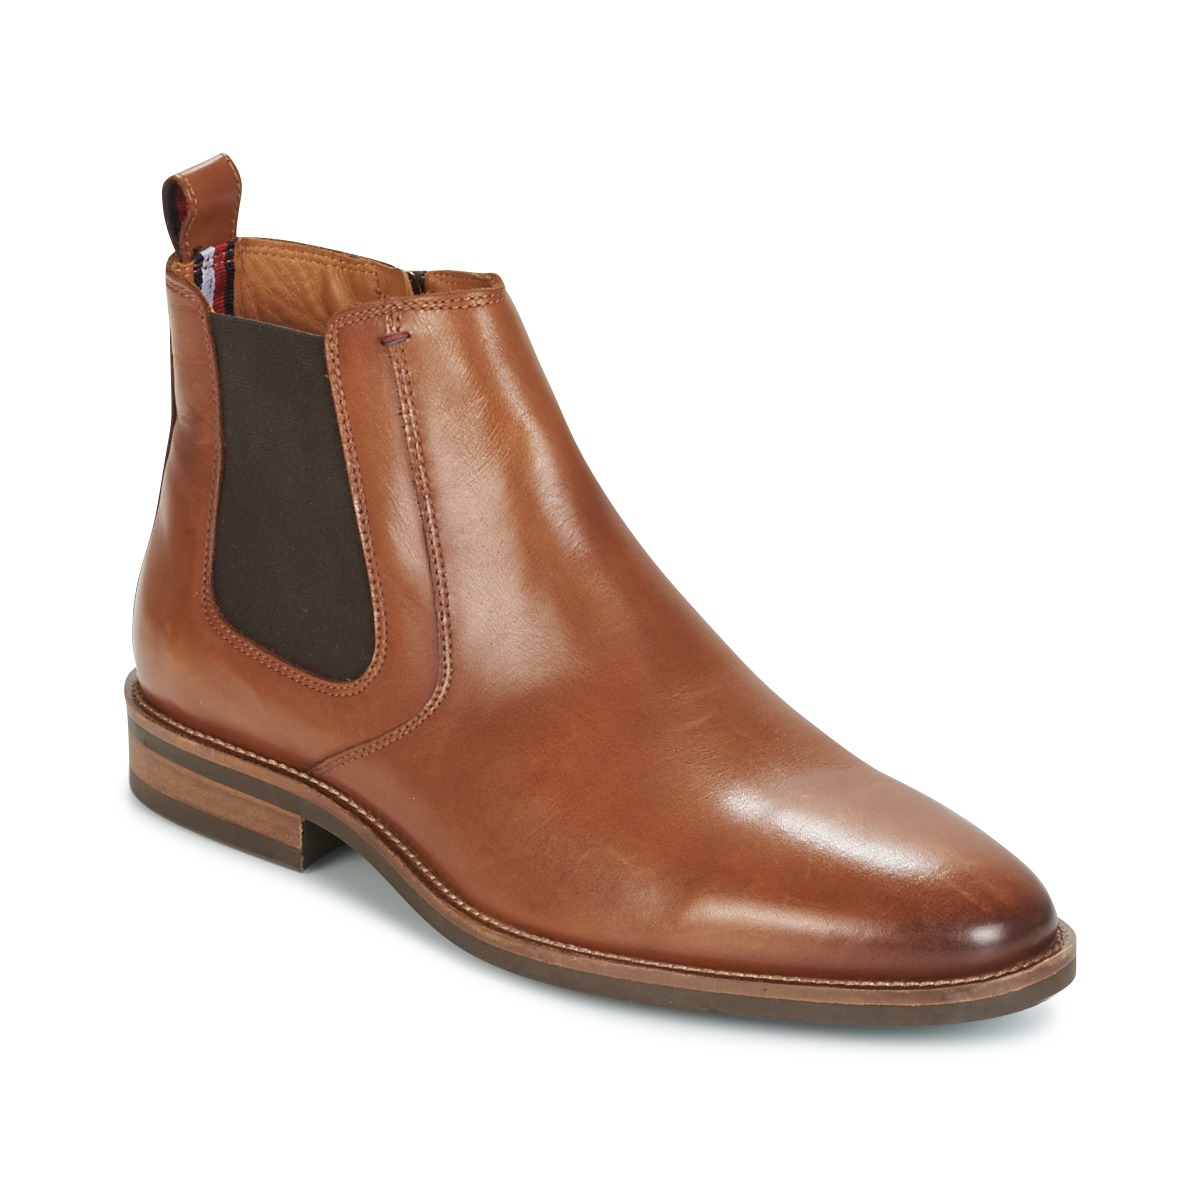 86b13ab23 Tommy Hilfiger DAYTONA 4A Cognac - Fast delivery with Spartoo Europe ! -  Shoes Mid boots Men 159